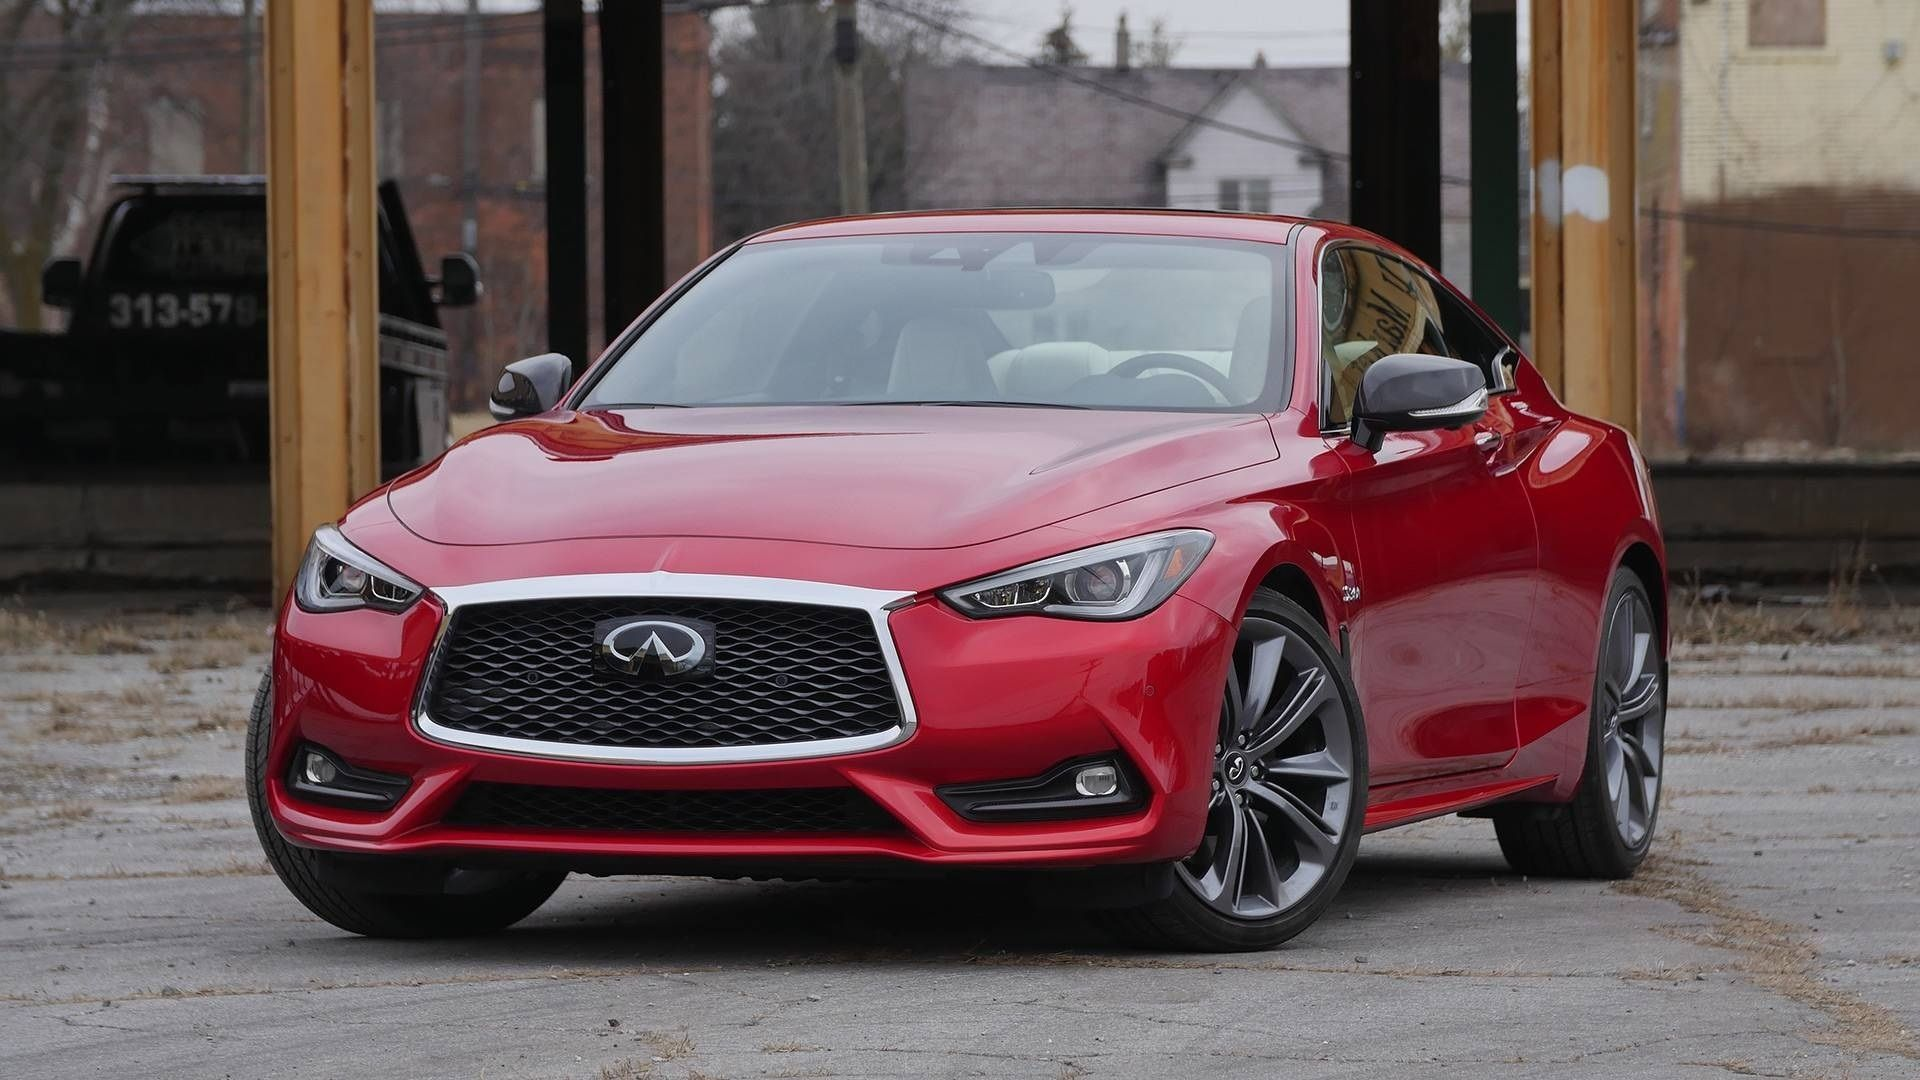 what does the 2020 Infiniti Q50 Specs look like Infiniti